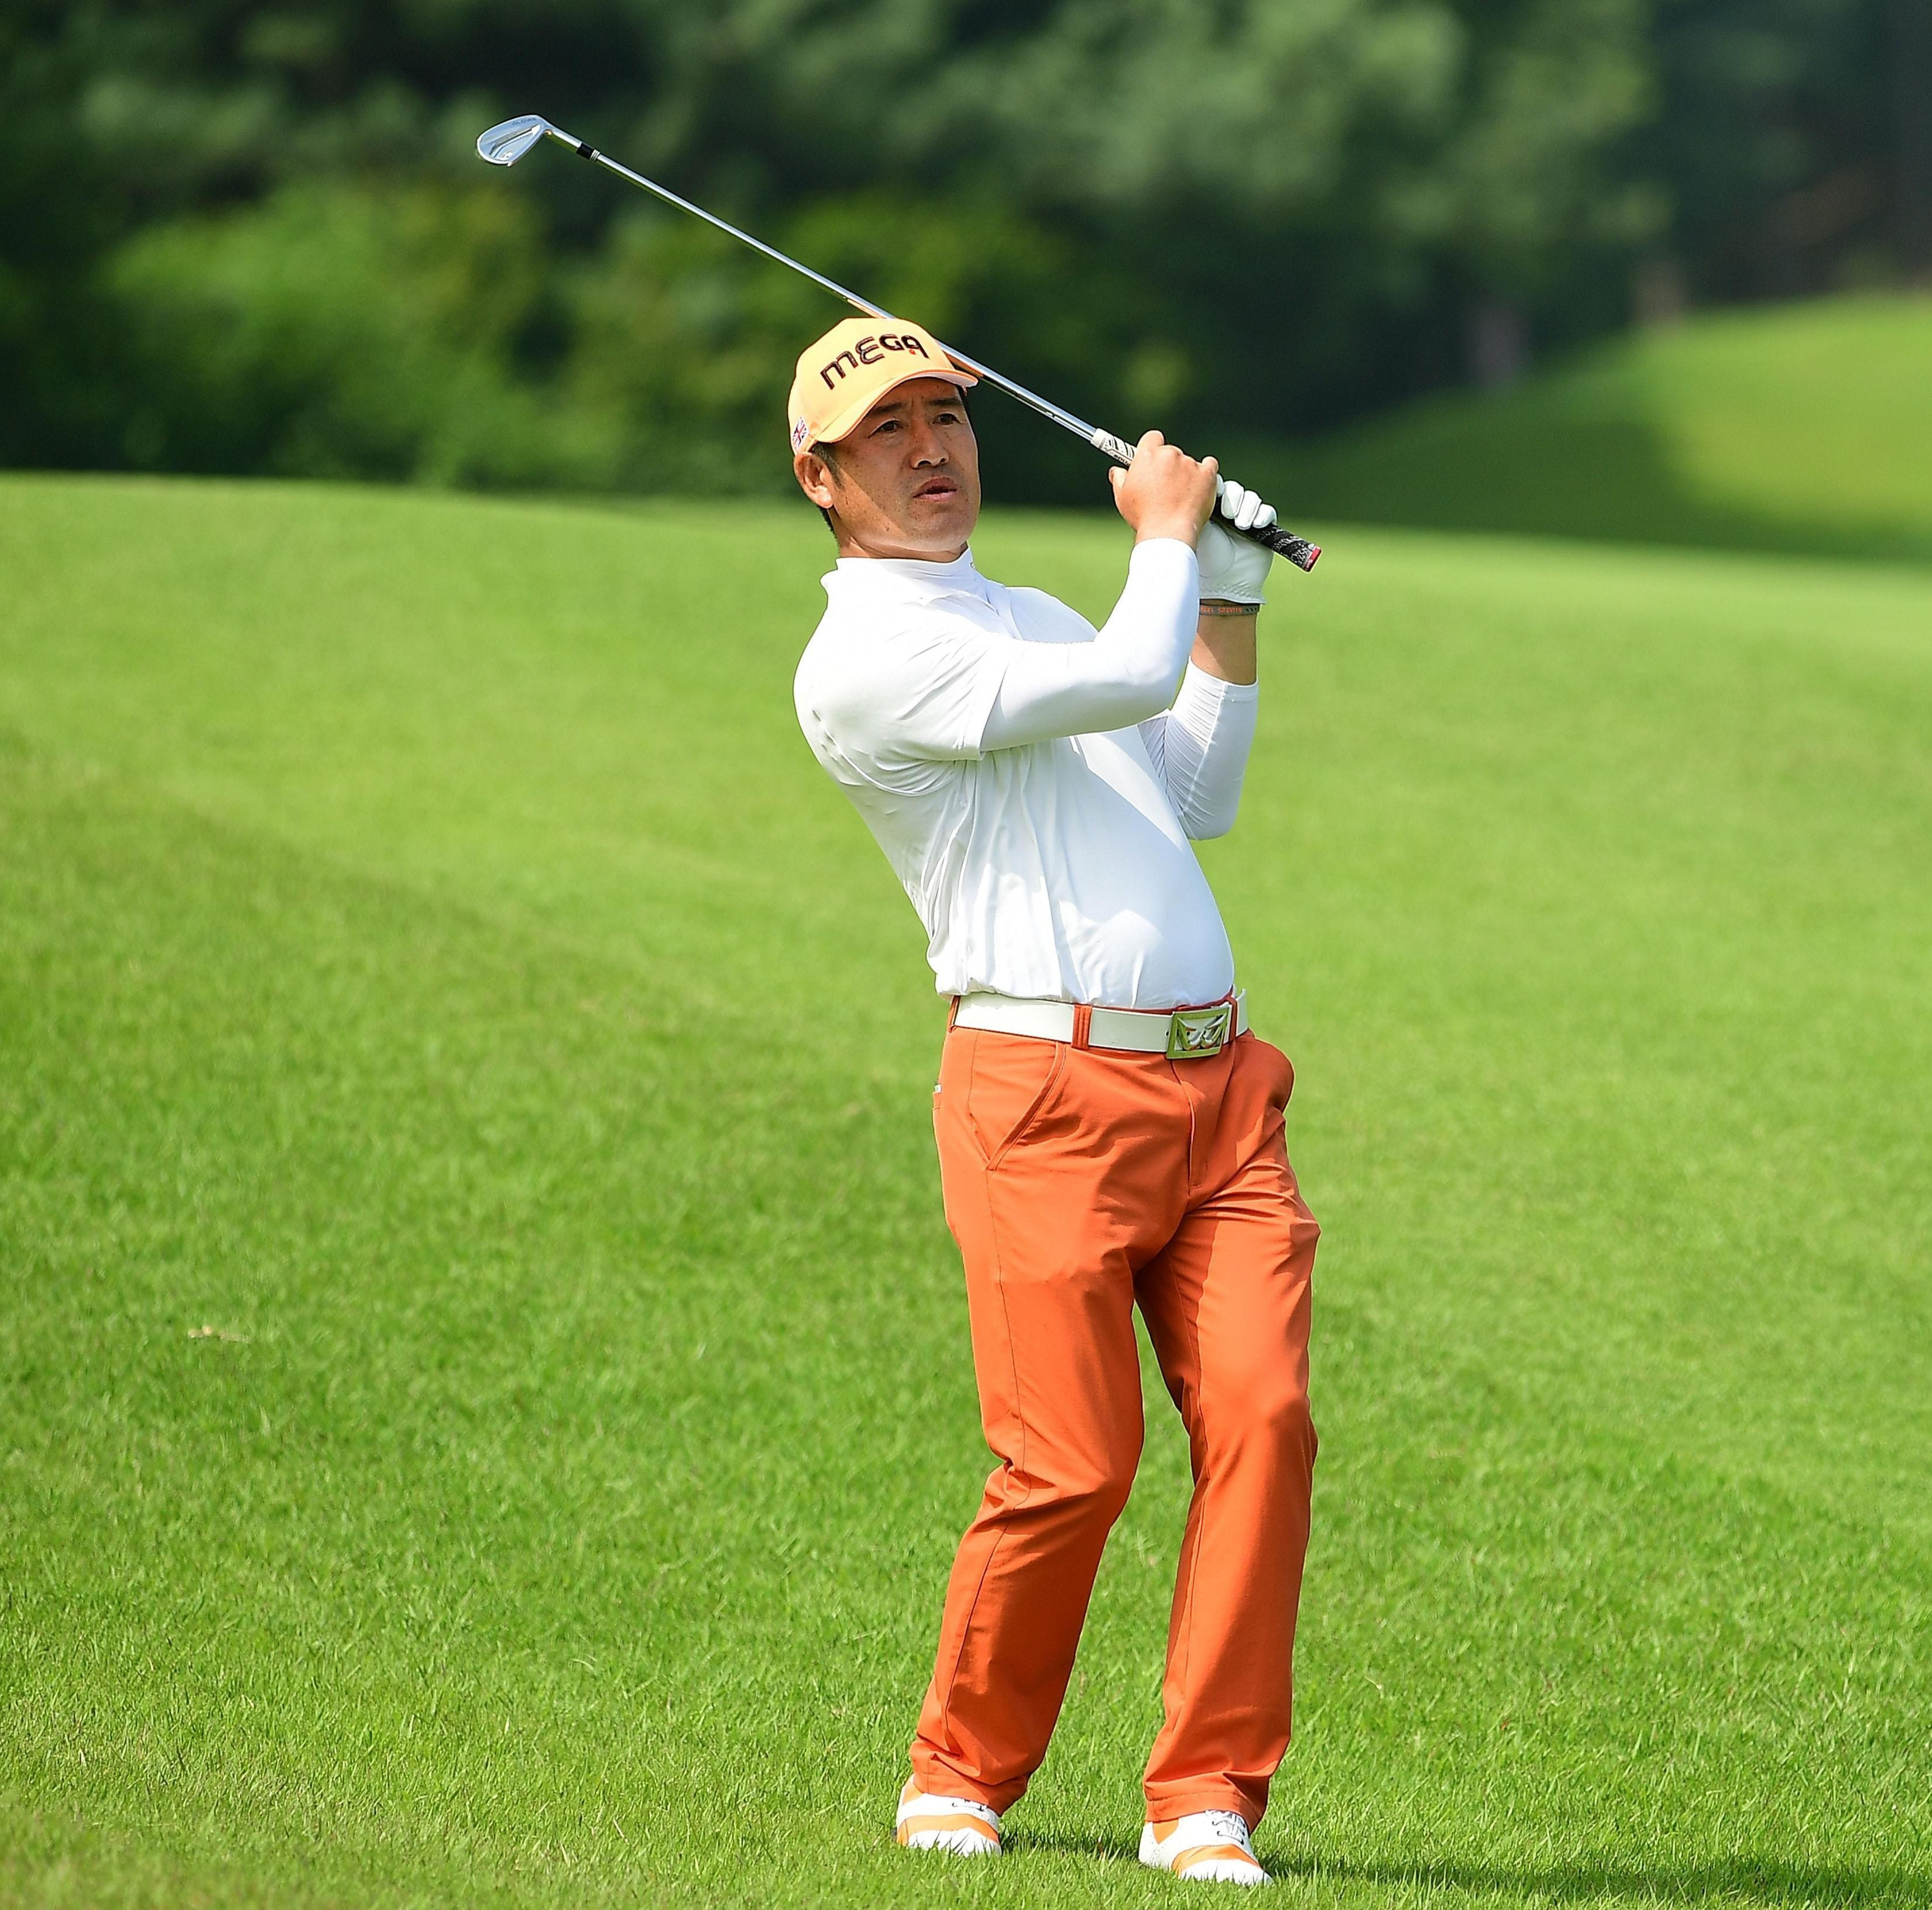 Fans now want Choi Ho-sung to be allowed to play at The Open